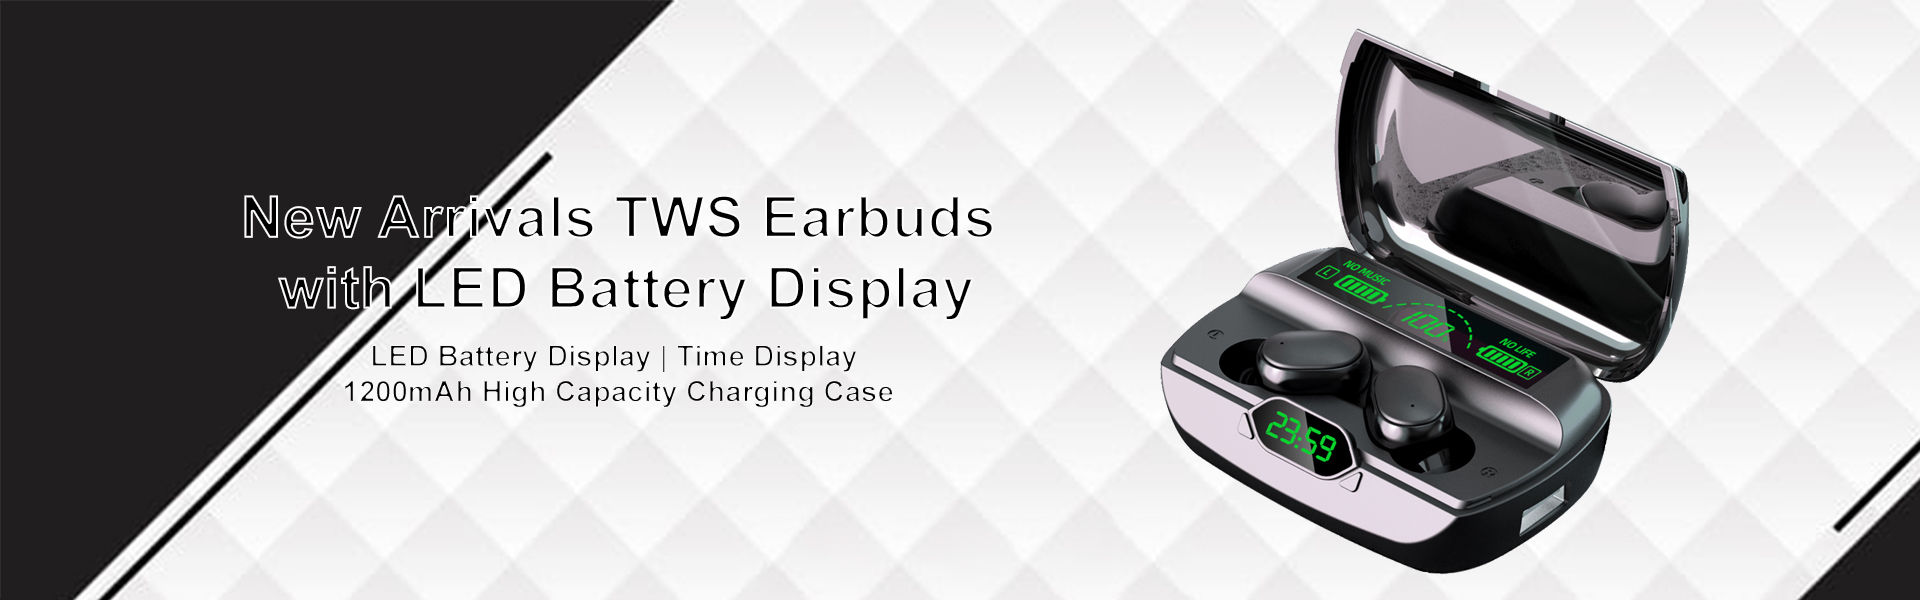 TWS Earbuds, Phone Cases, Airpods/Airpods Pro Cases, Other Gadgets, Promotion - Xl-gadgets.com